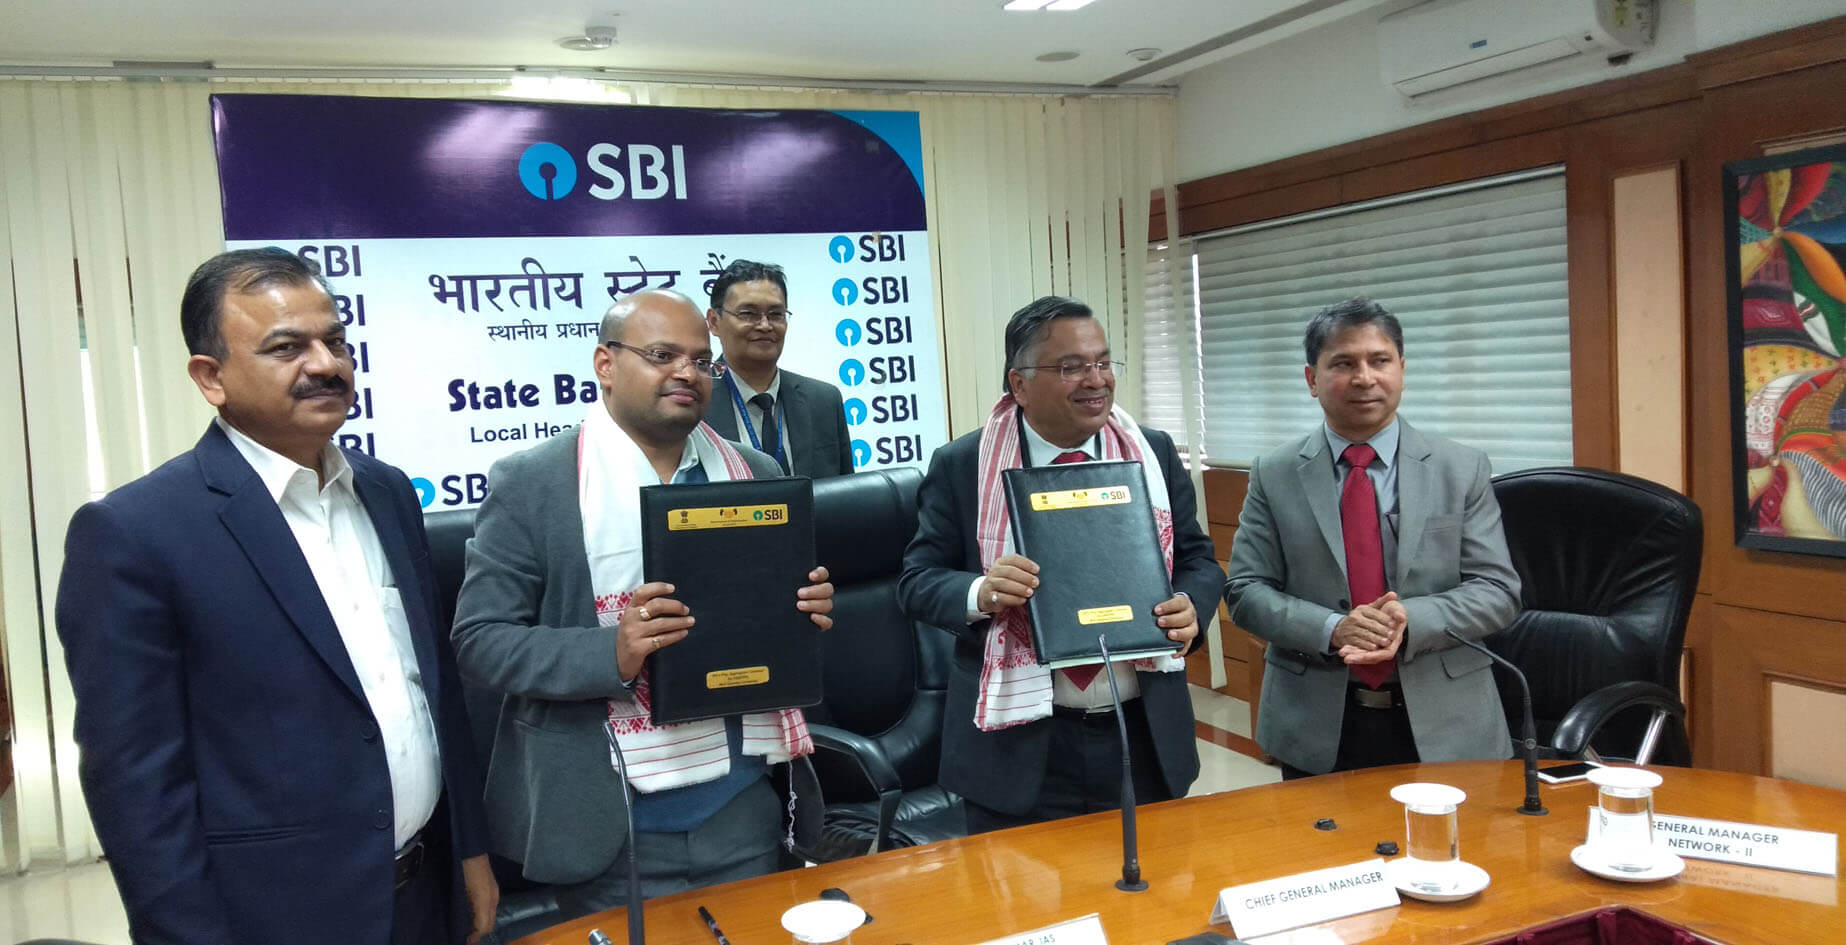 SBI signs MoU with Transport department